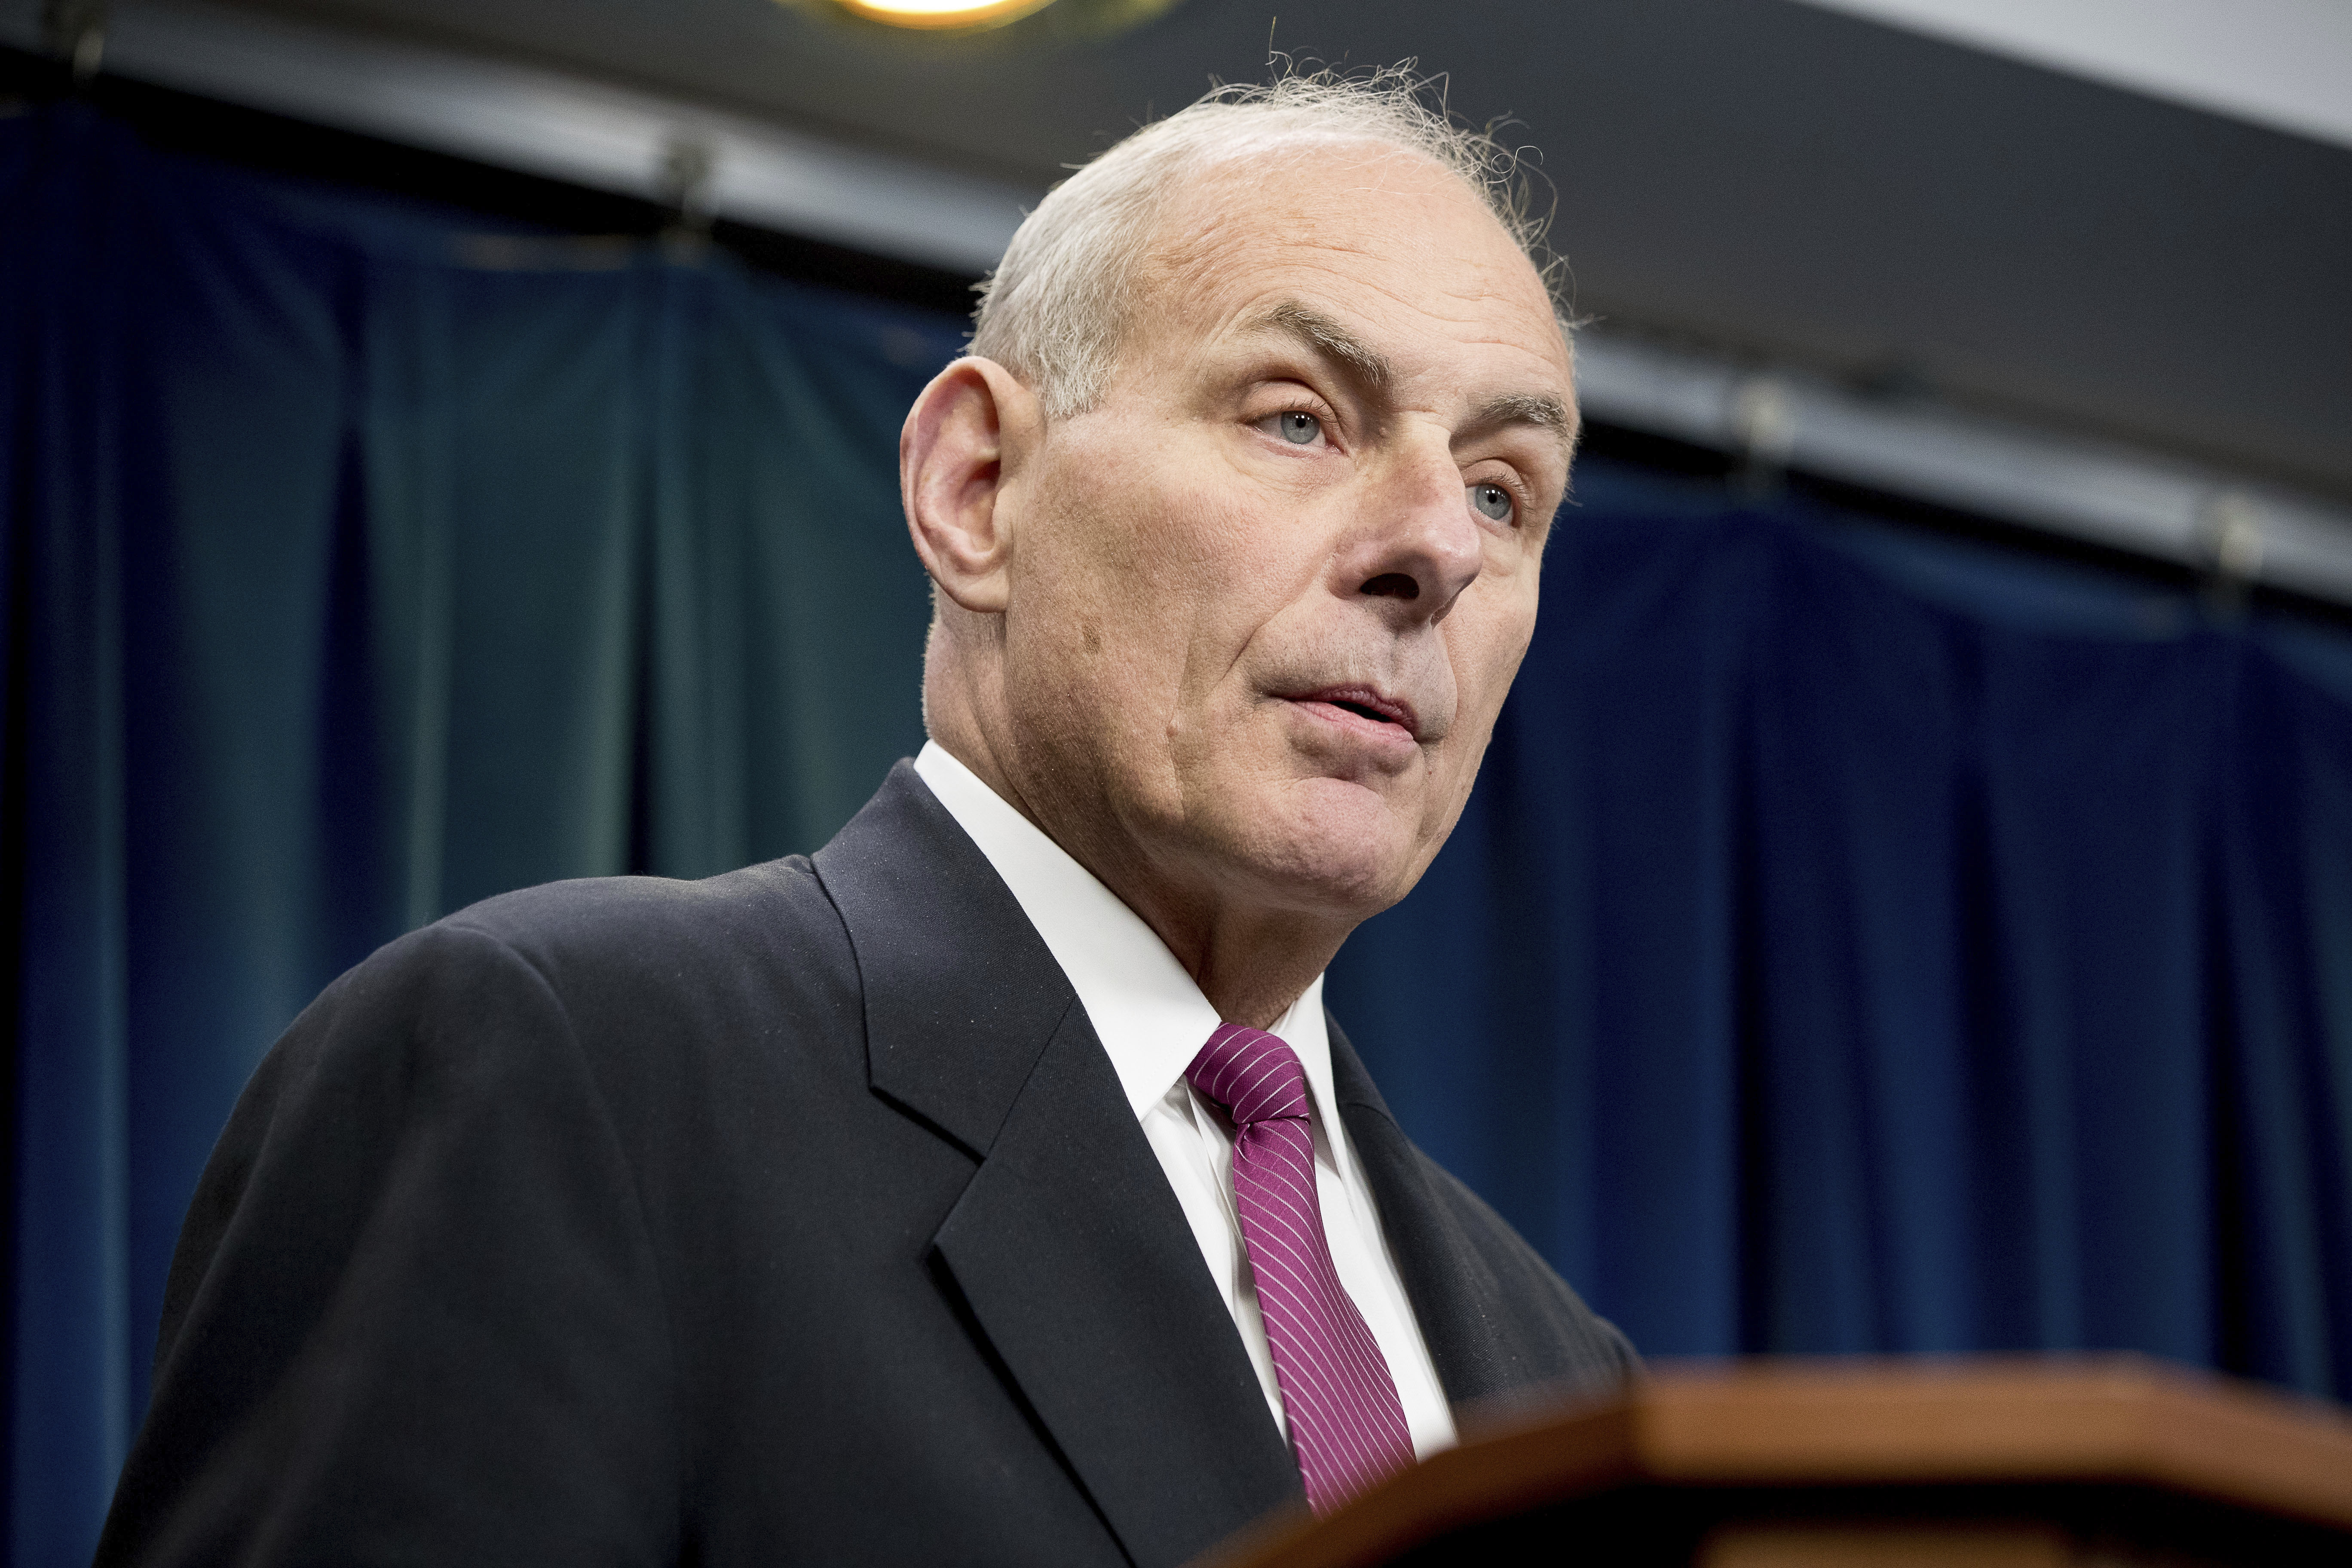 Homeland Security Secretary John Kelly speaks at a news conference at the U.S. Customs and Border Protection headquarters in Washington, Jan. 31, 2017, to discuss the operational implementation of the president's executive orders.